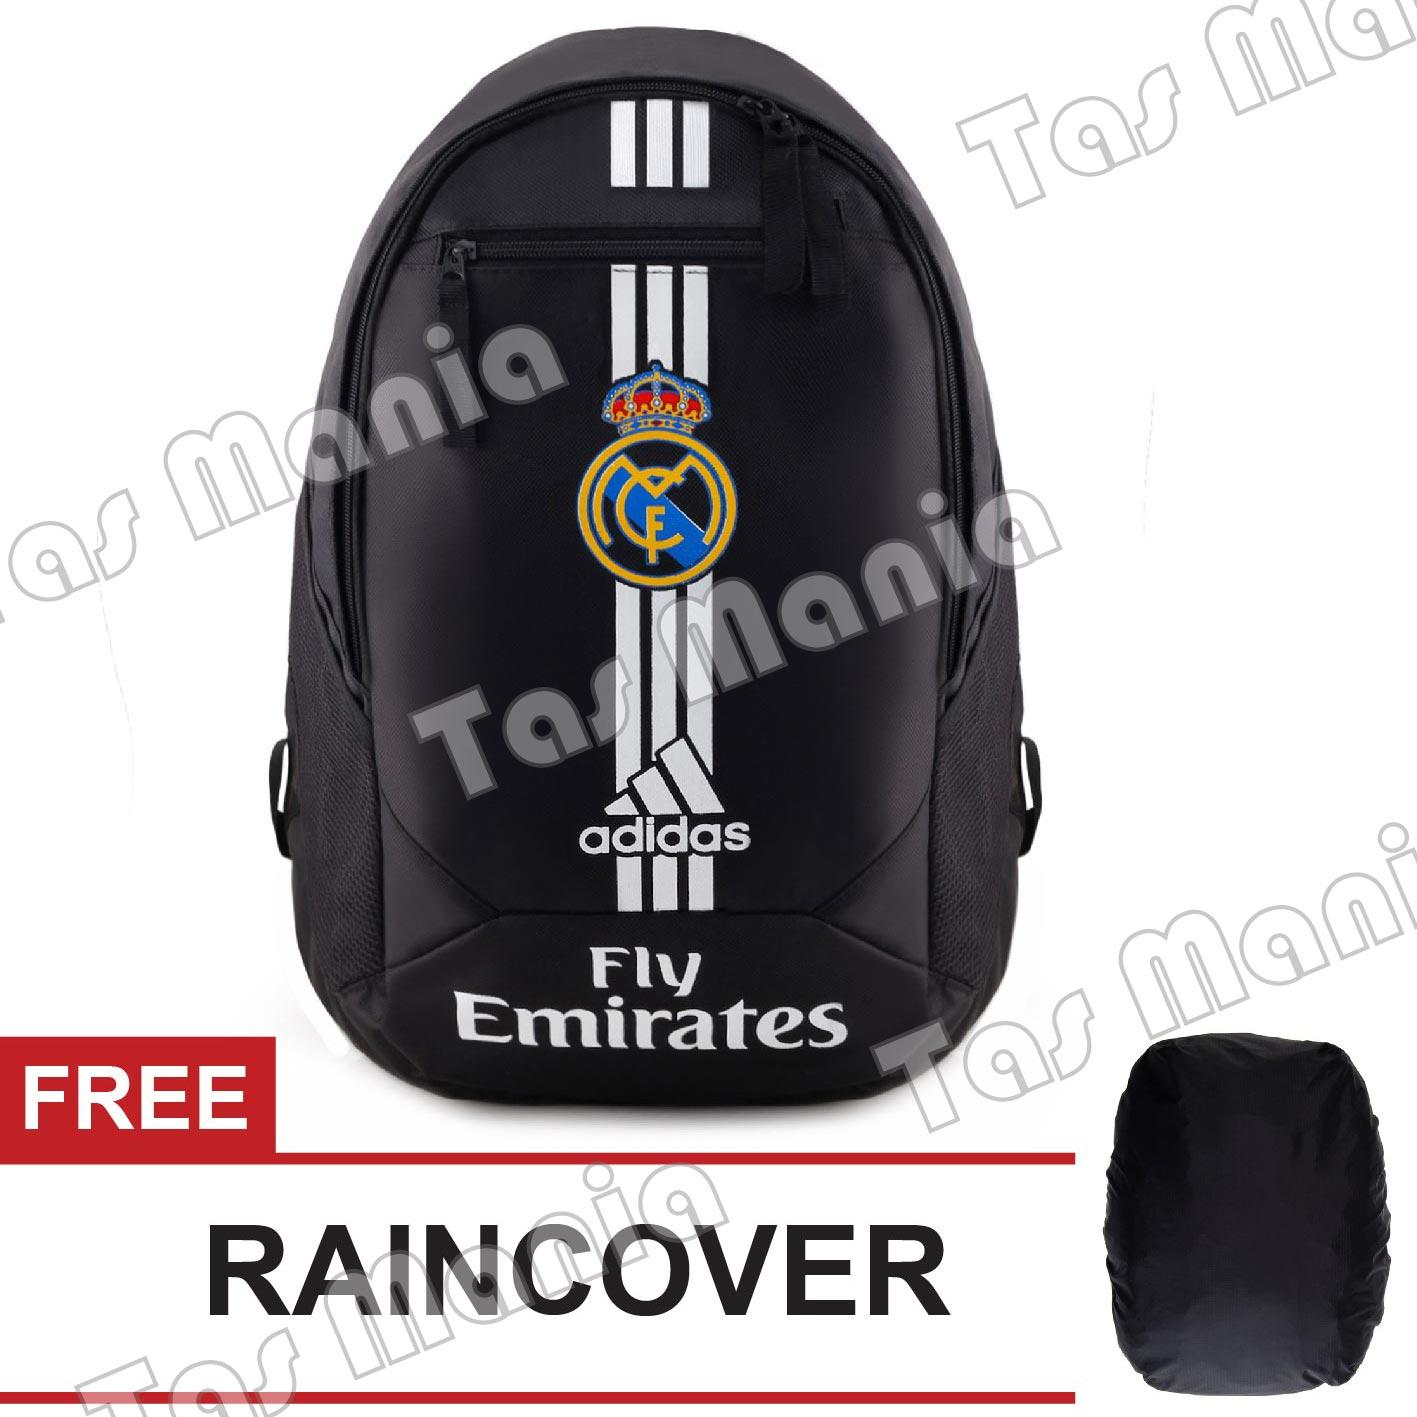 Tas Ransel Adidas Bola Pria Real Madrid C.F Laptop Backpack Men Soccer Editions - Black + FREE Raincover